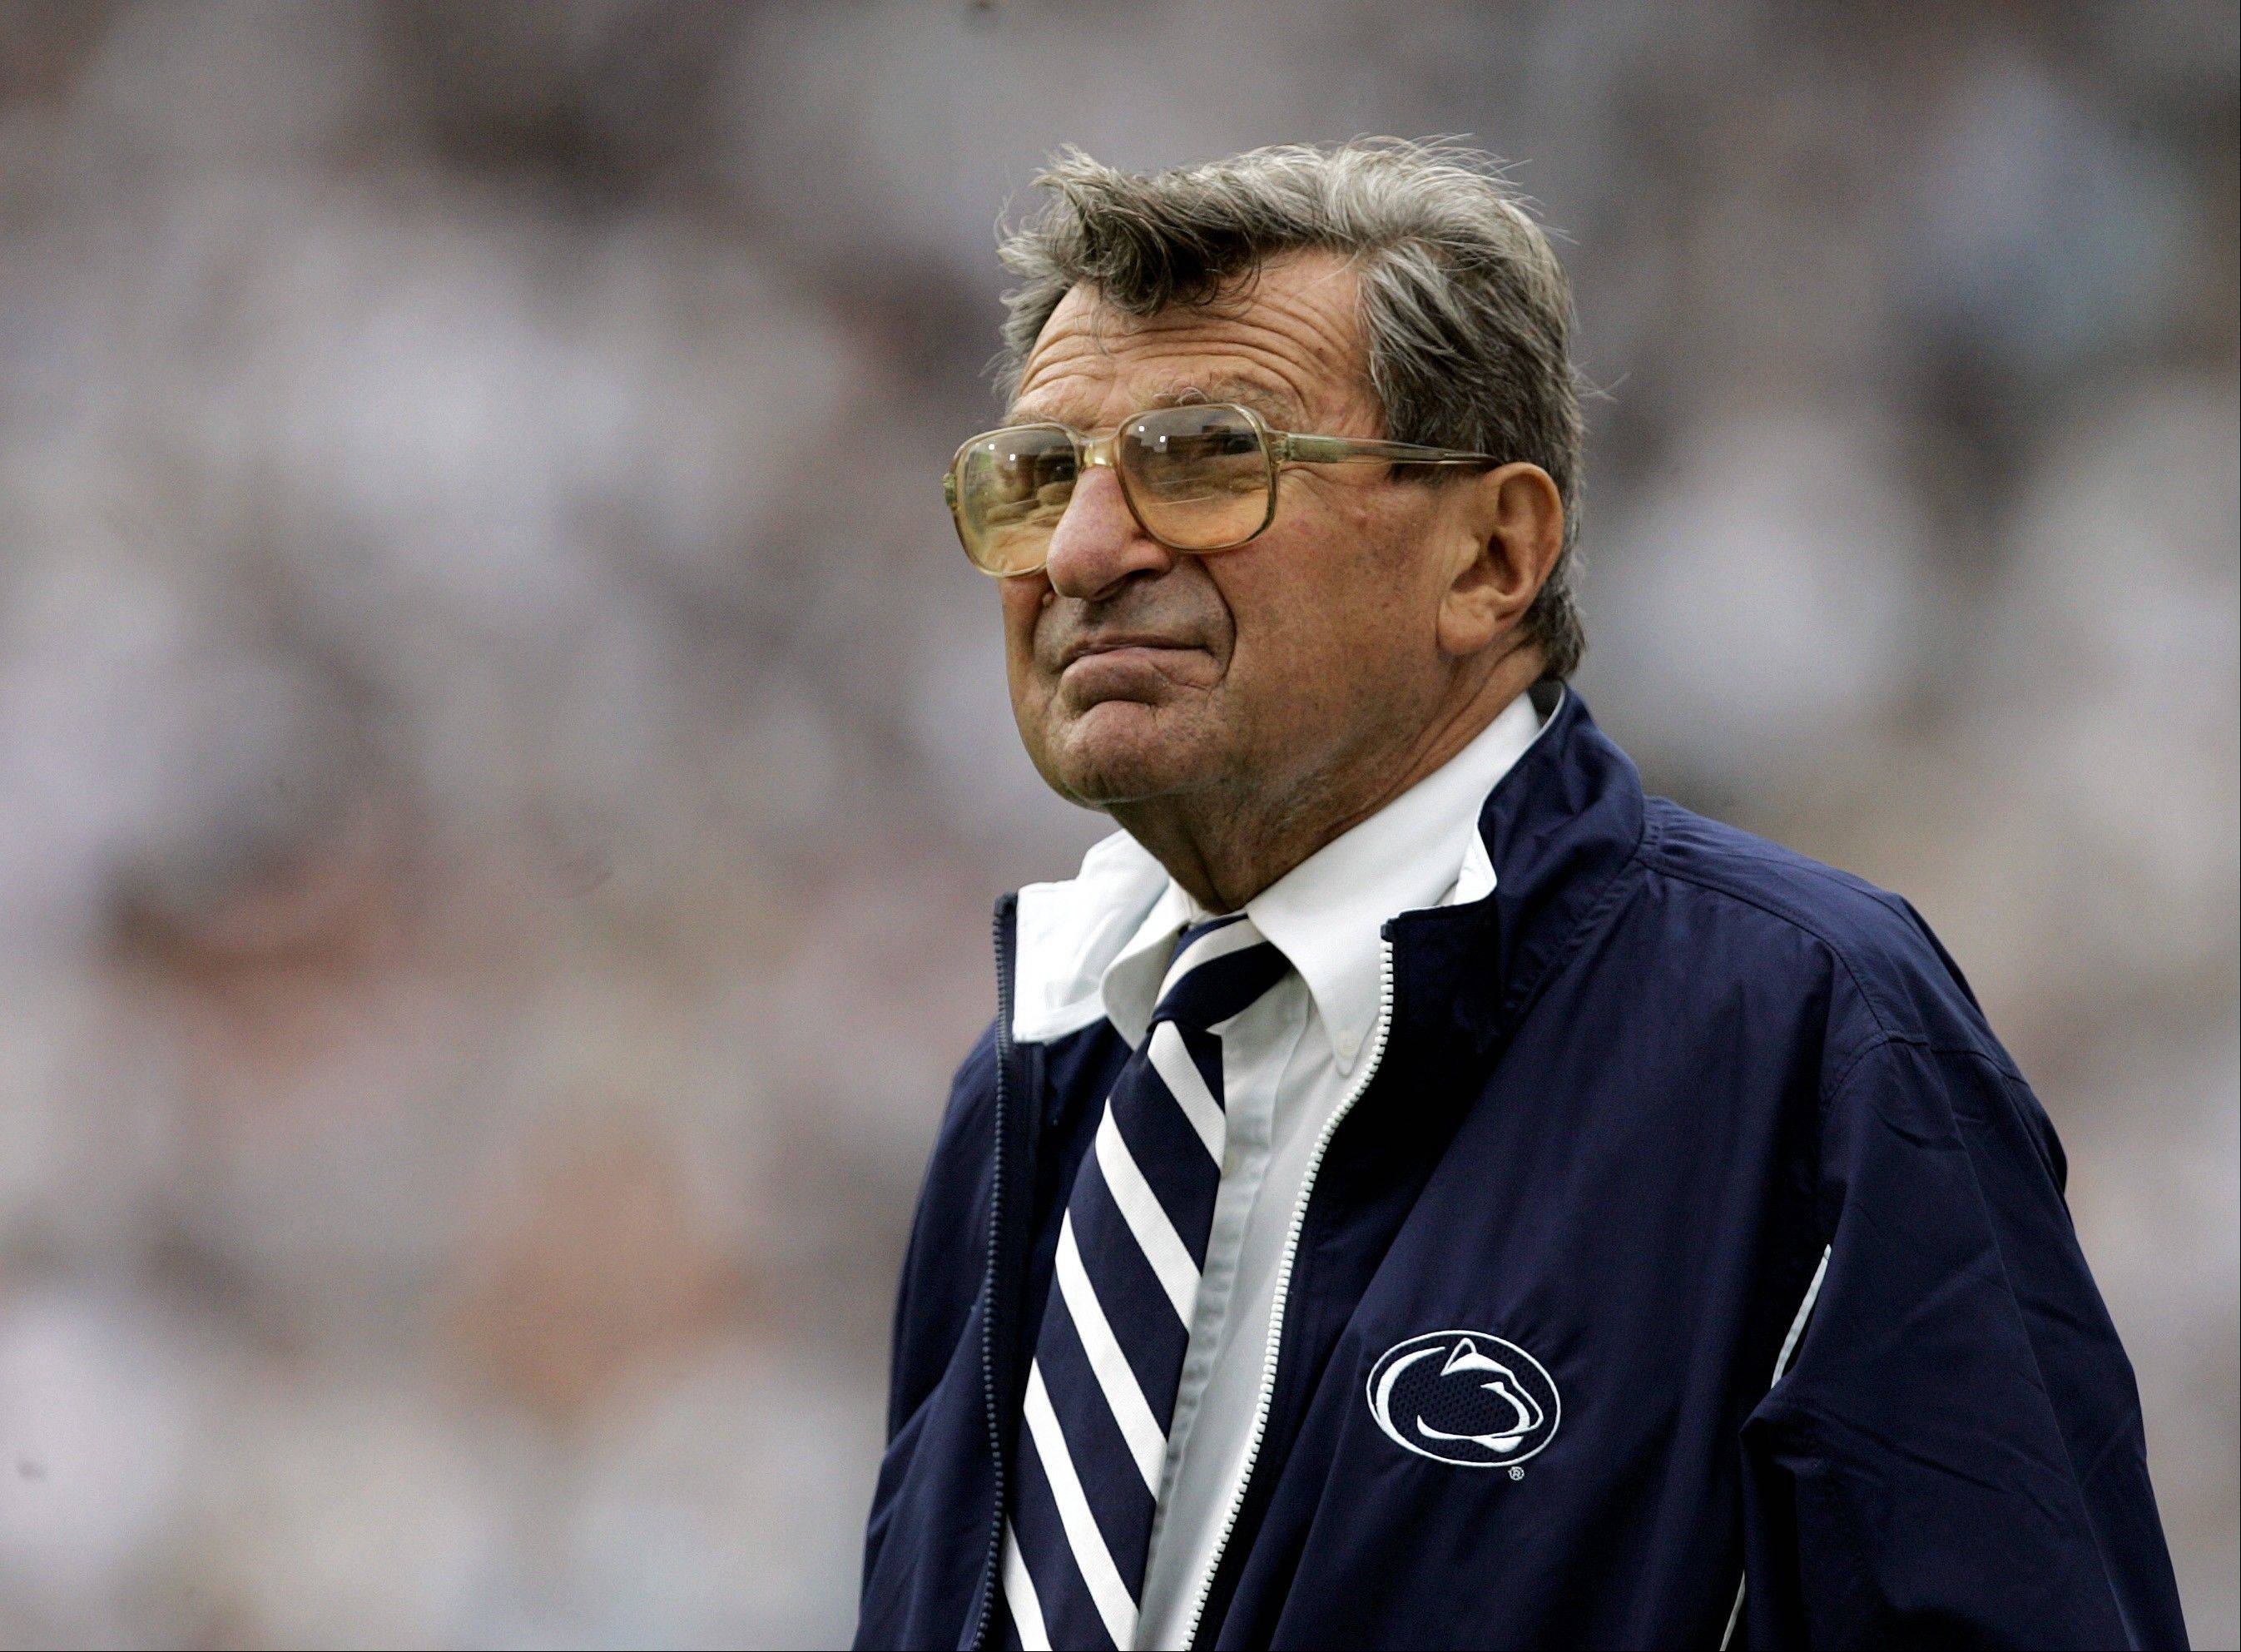 Penn State coach Joe Paterno watches a 2006 game against Youngstown State from the sidelines in State College, Pa. Paterno died of cancer in January 2012, just months after losing his job in the wake of the Jerry Sandusky sex abuse scandal.